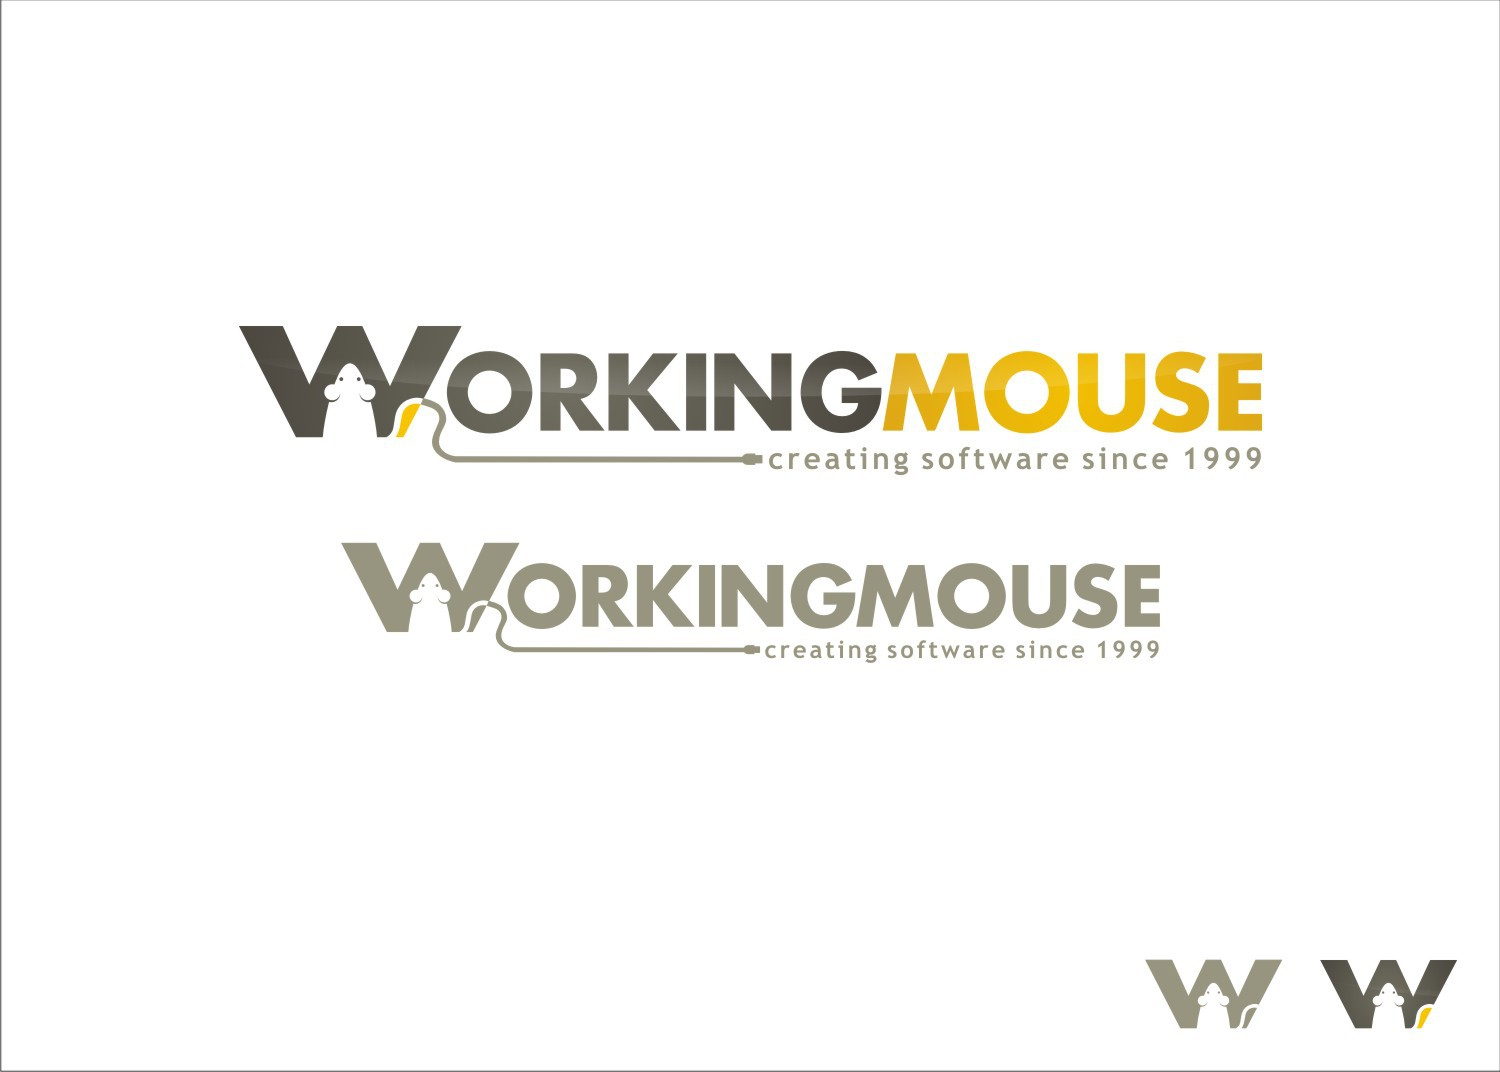 Help WorkingMouse with a new logo